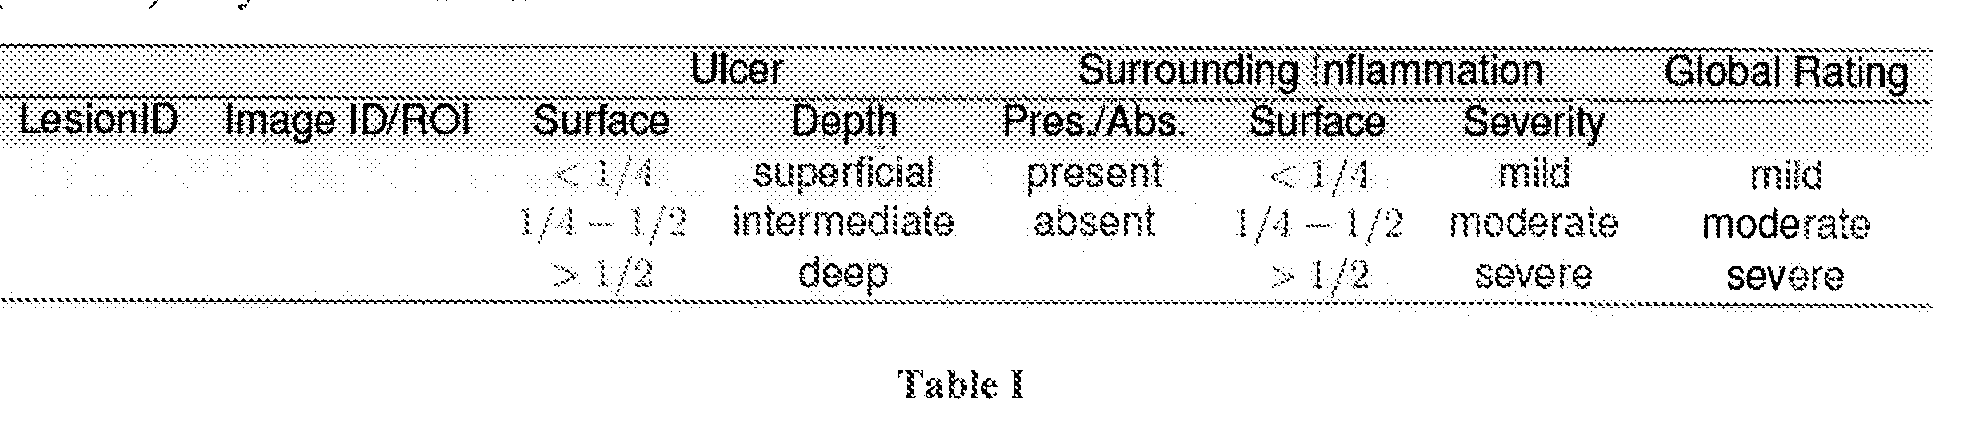 WO2011005865A2 - A system and method for automated disease